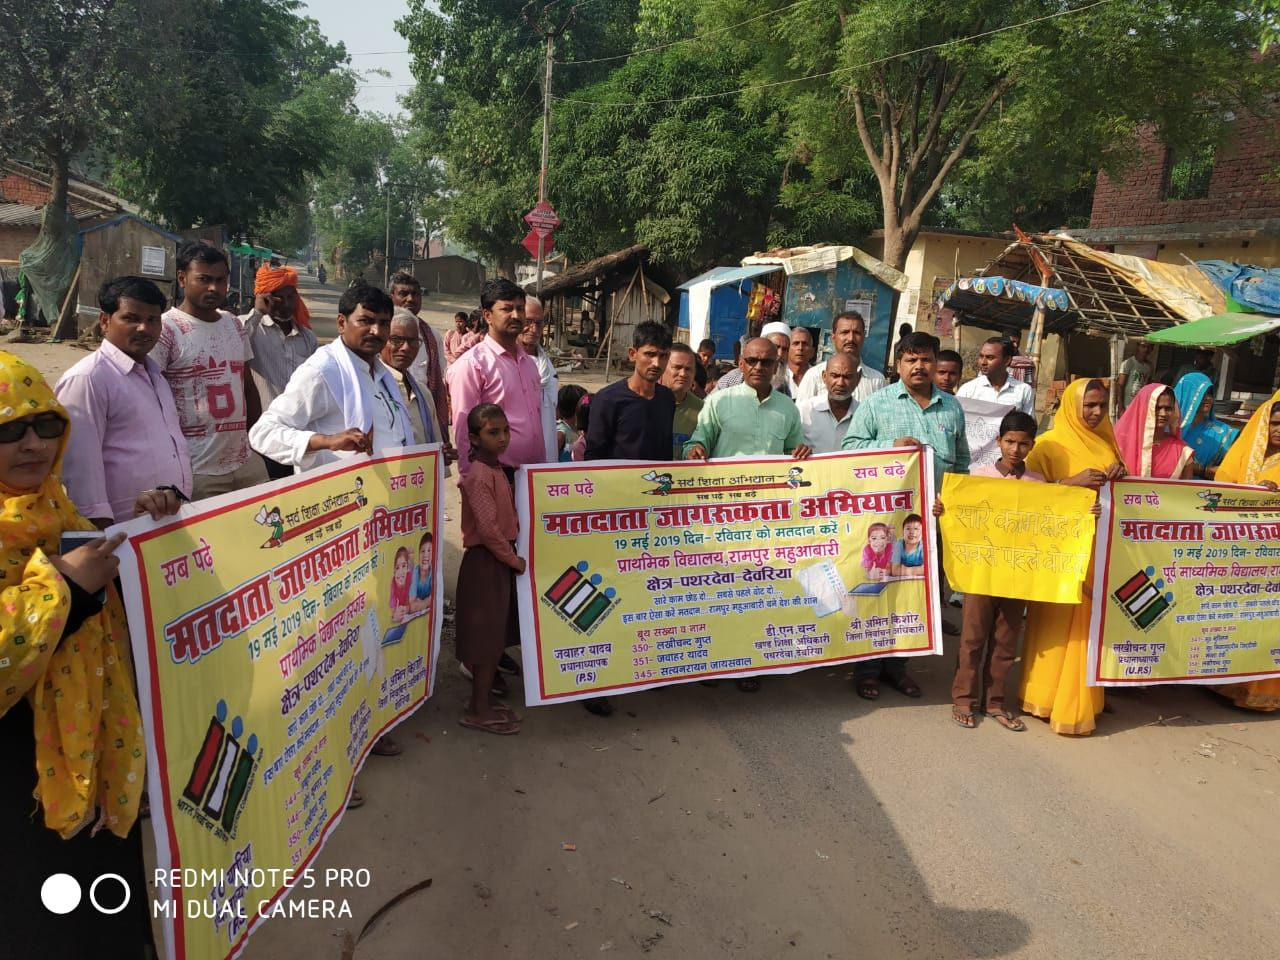 SVEEP DEORIA VOTER AWARENESS PROGRAM UPS RAMPUR MAHUWABARI PATHARDEVA DEORIA (3).jpeg